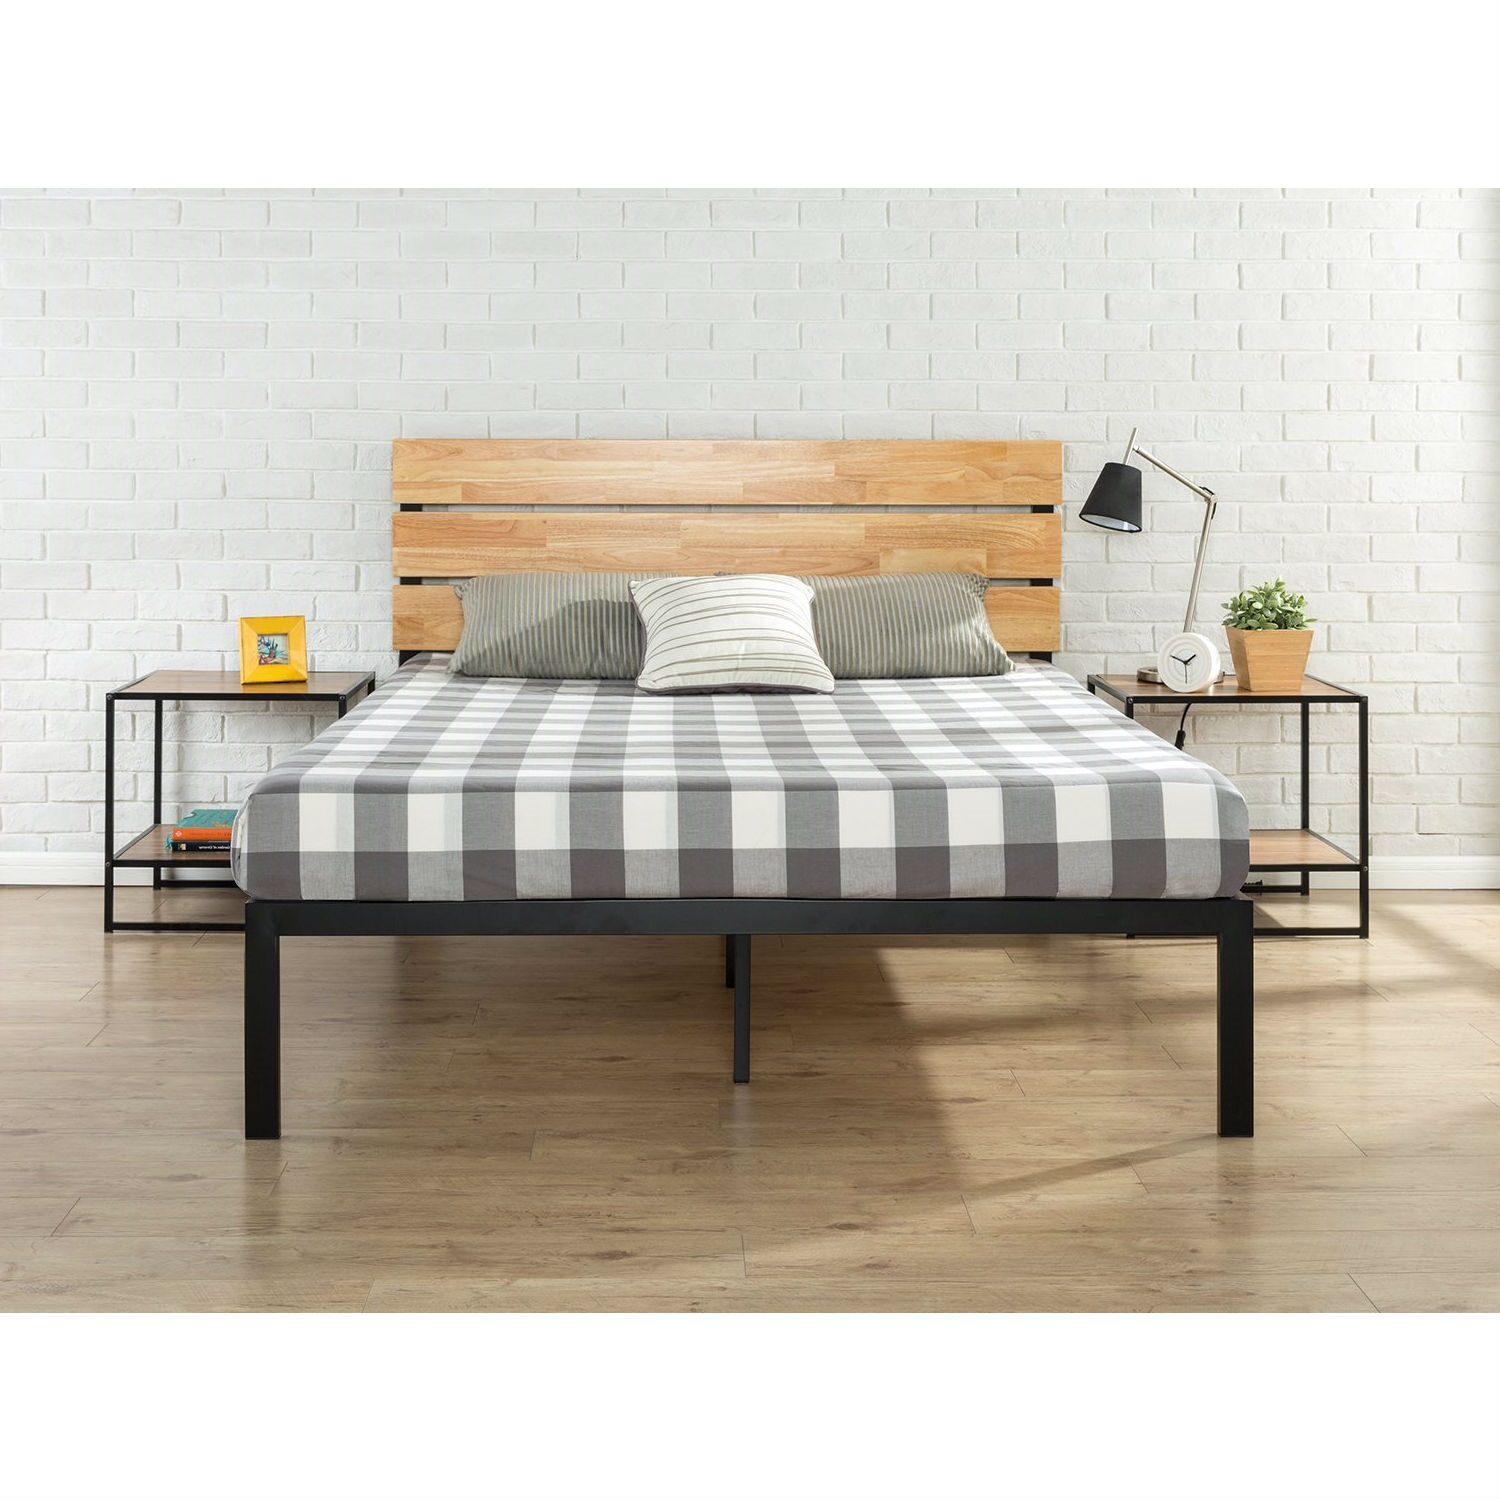 King Size Modern Metal Platform Bed Frame With Wood